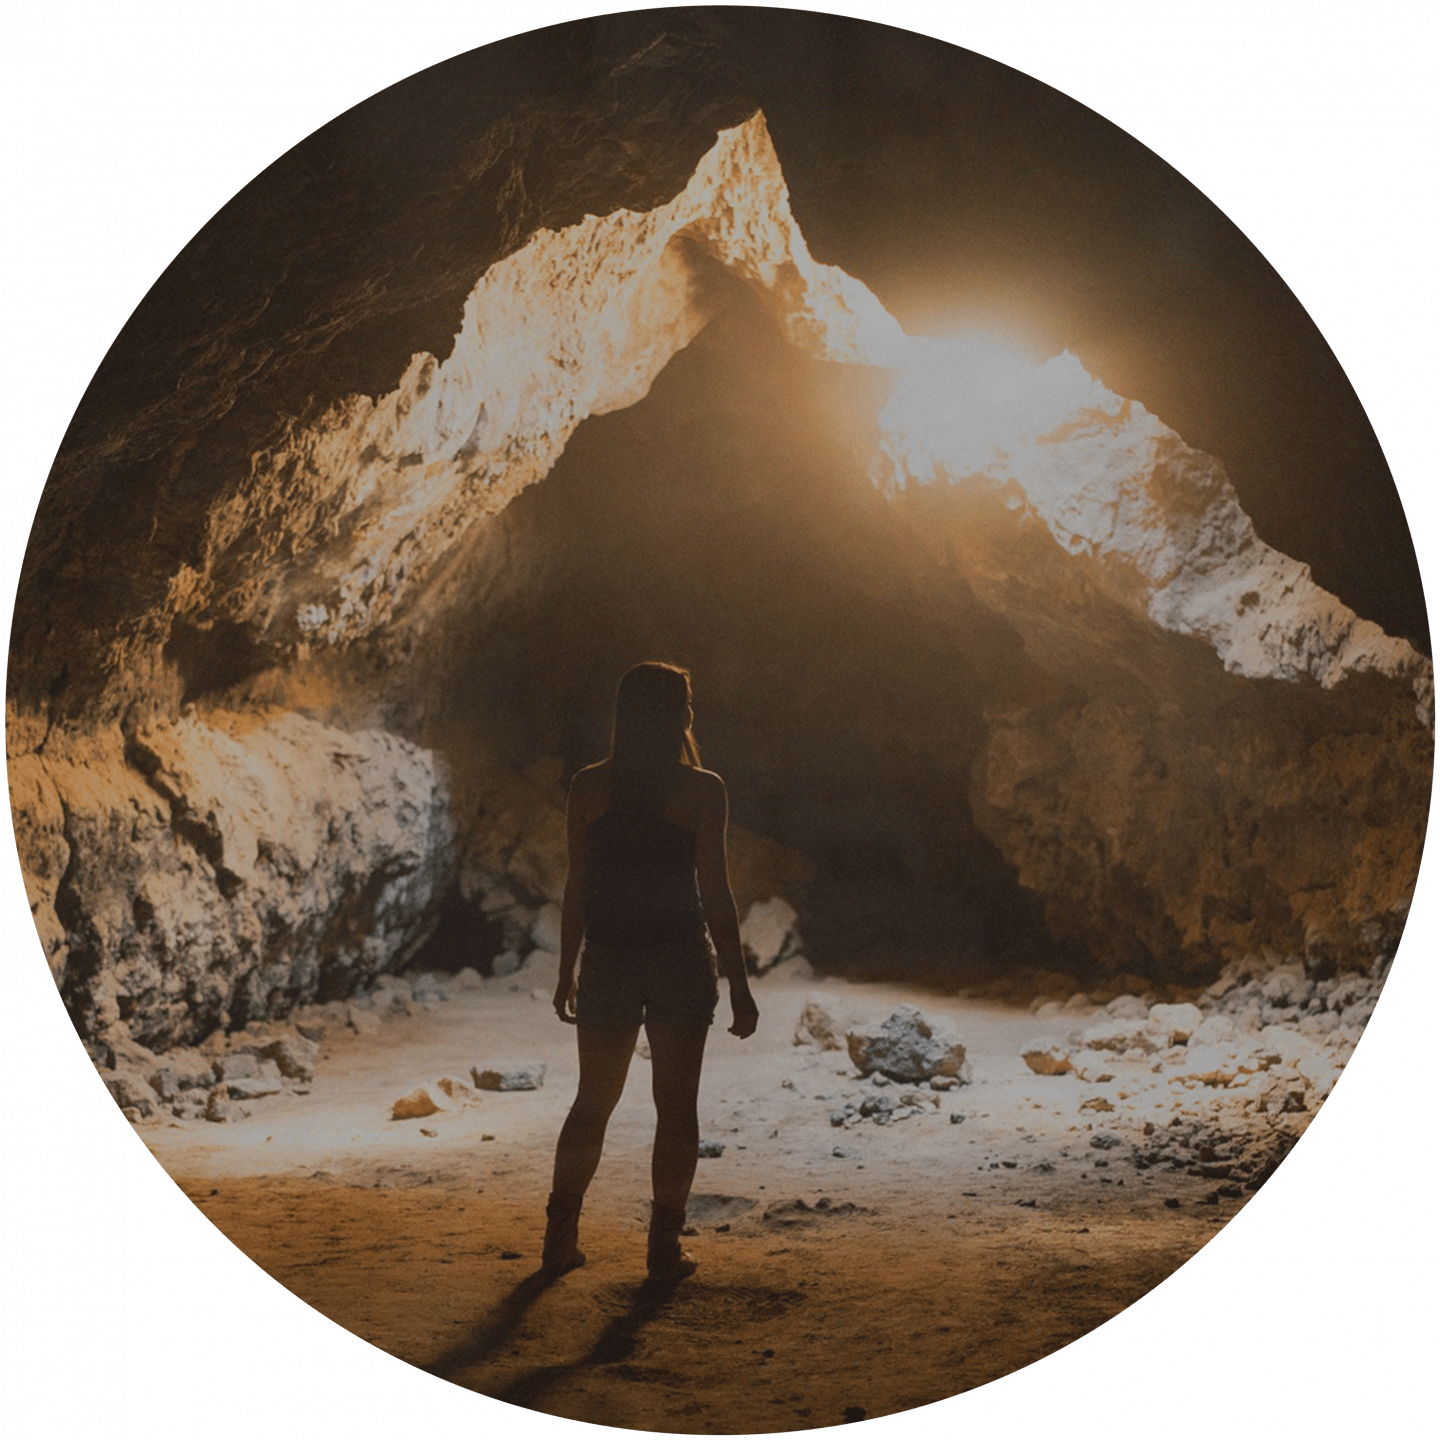 A woman is standing in front of a cave entrance. team building, cave, explorer, exploration, team event, outdoor, adventure, adidas, GamePlan A, team bonding